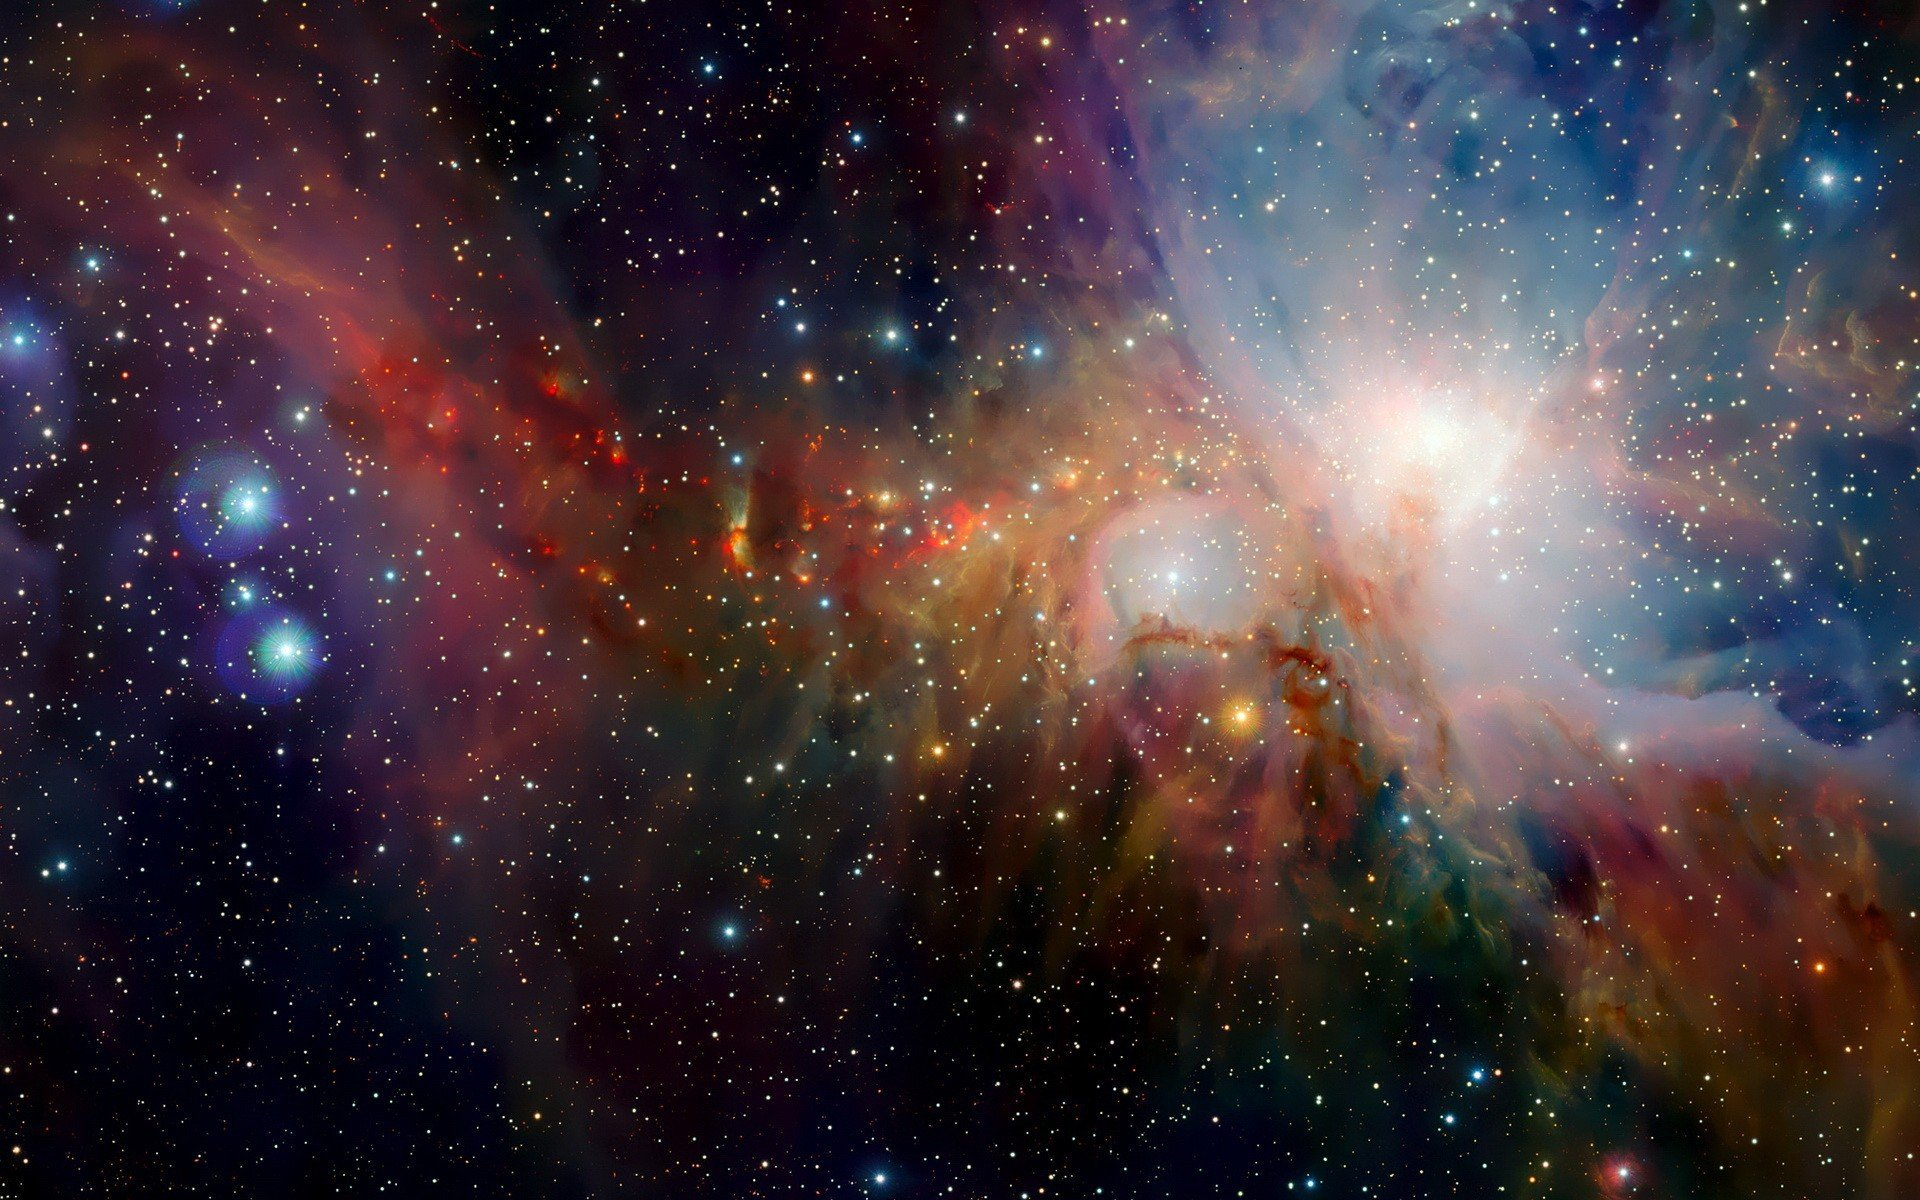 Ios 7 outer space stars wallpaper wallpapers and images   wallpapers 1920x1200